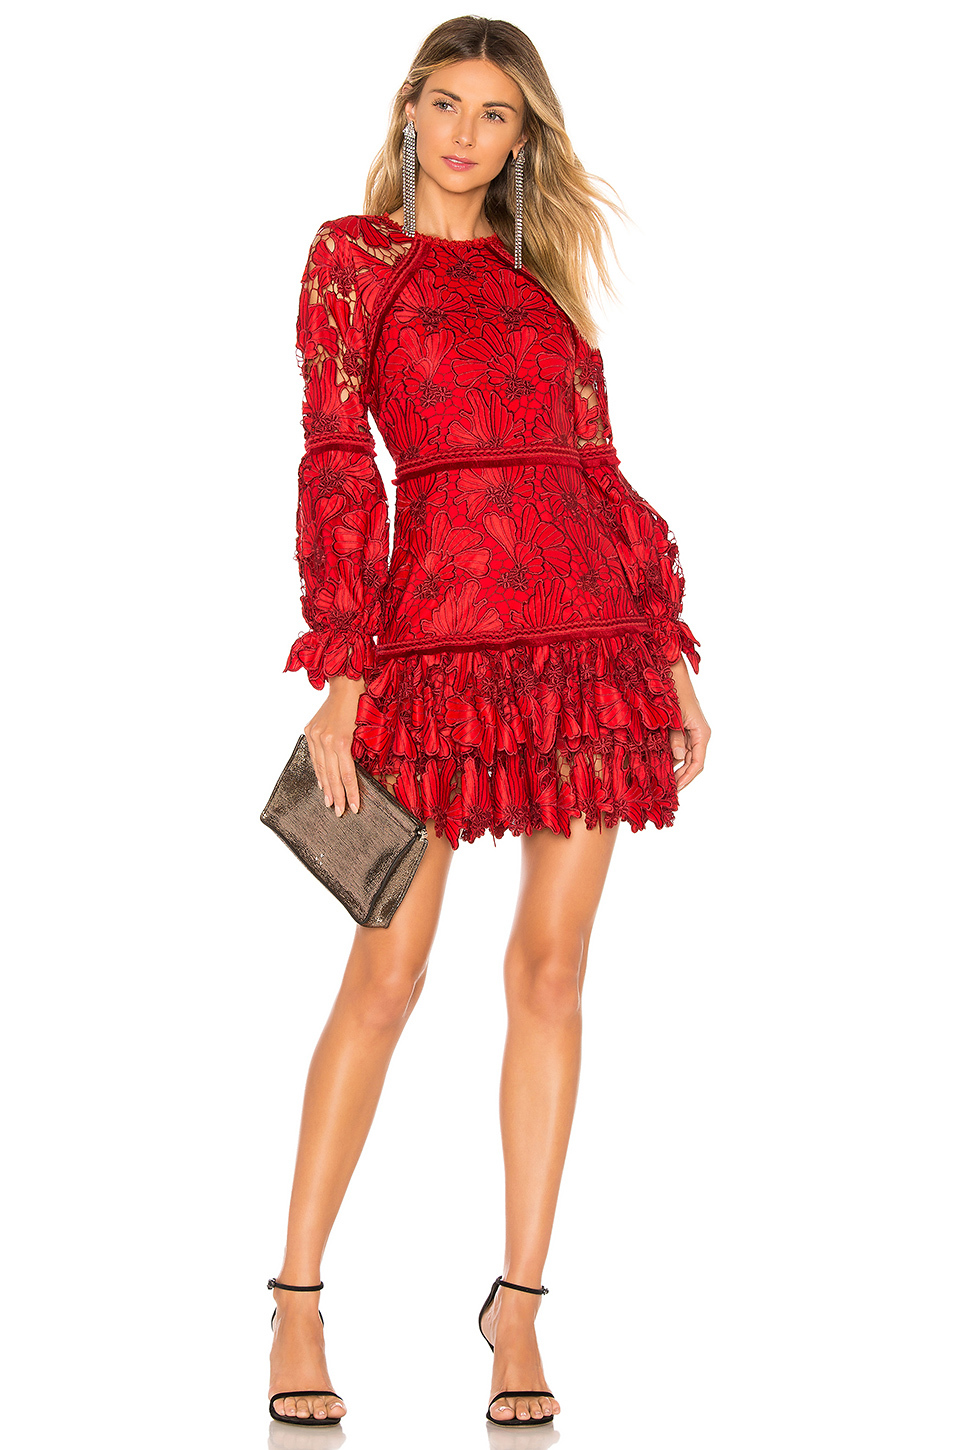 New Lace Red Dress Fashion In Autumn And Winter Party Elegant Christmas Dresses Woman Party Night